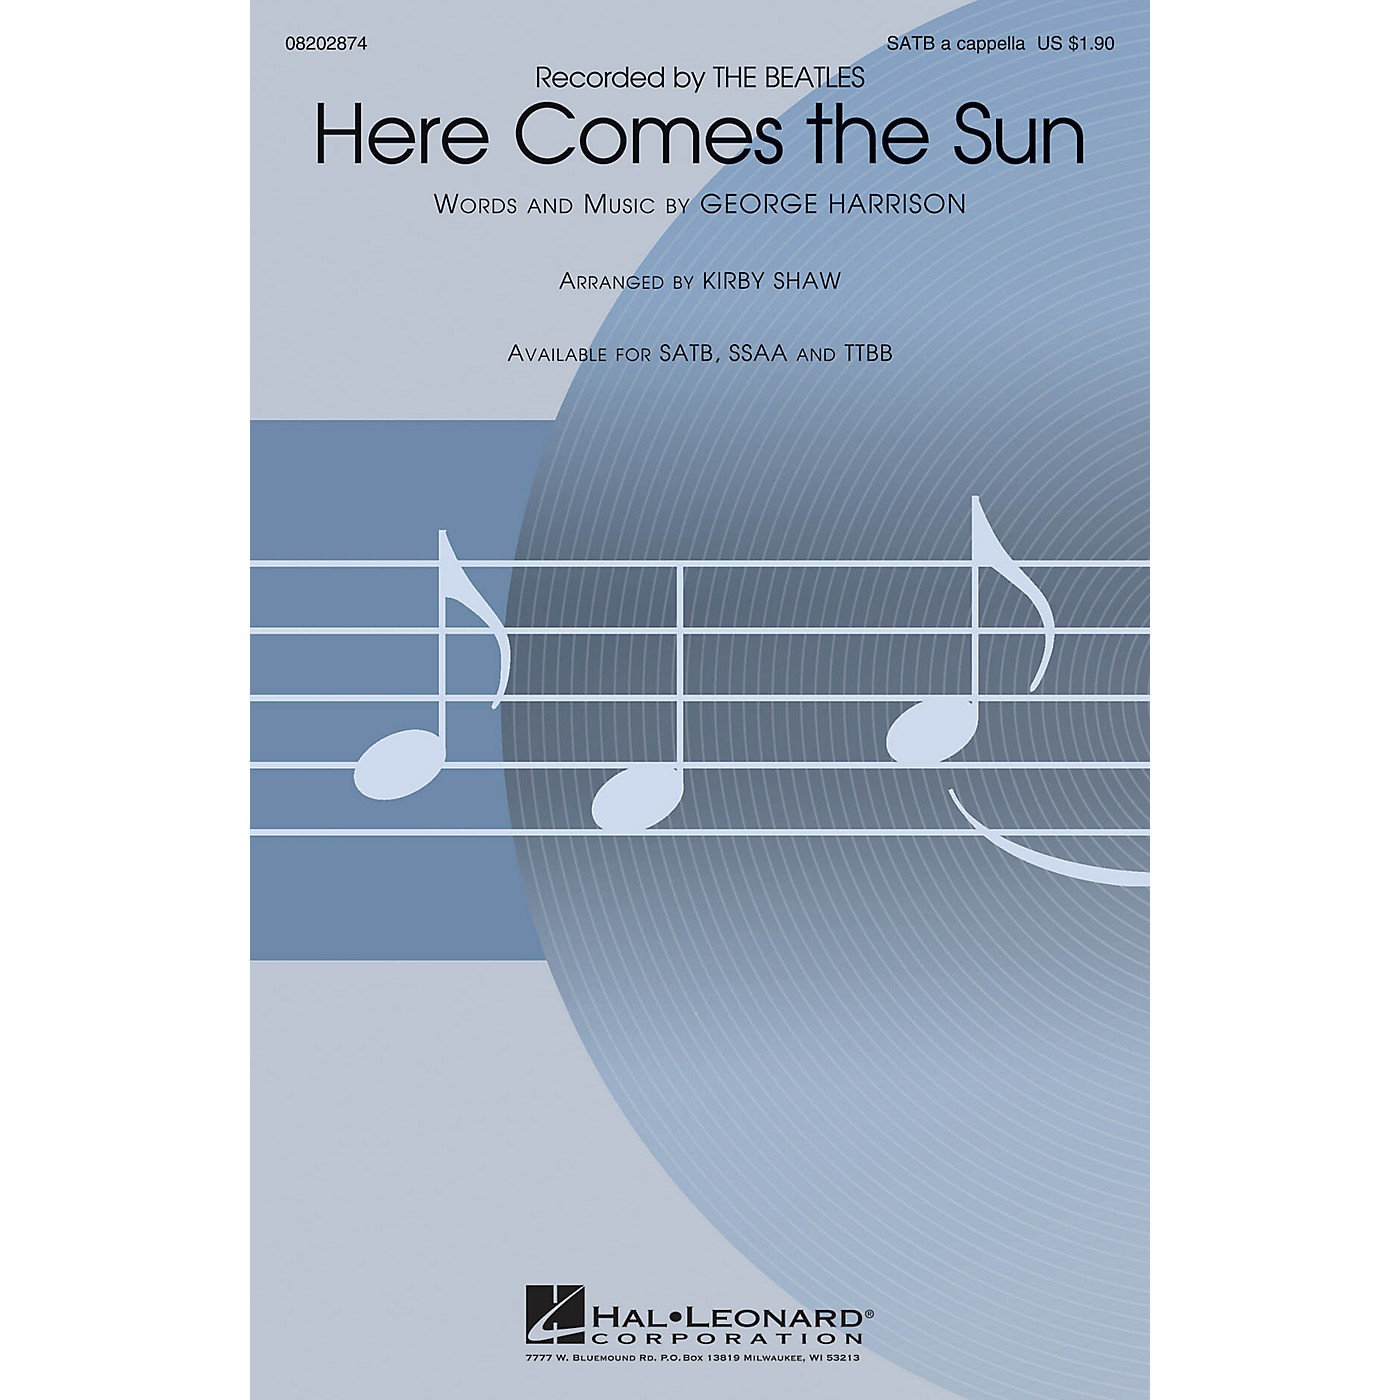 Hal Leonard Here Comes the Sun SATB a cappella by The Beatles arranged by Kirby Shaw thumbnail